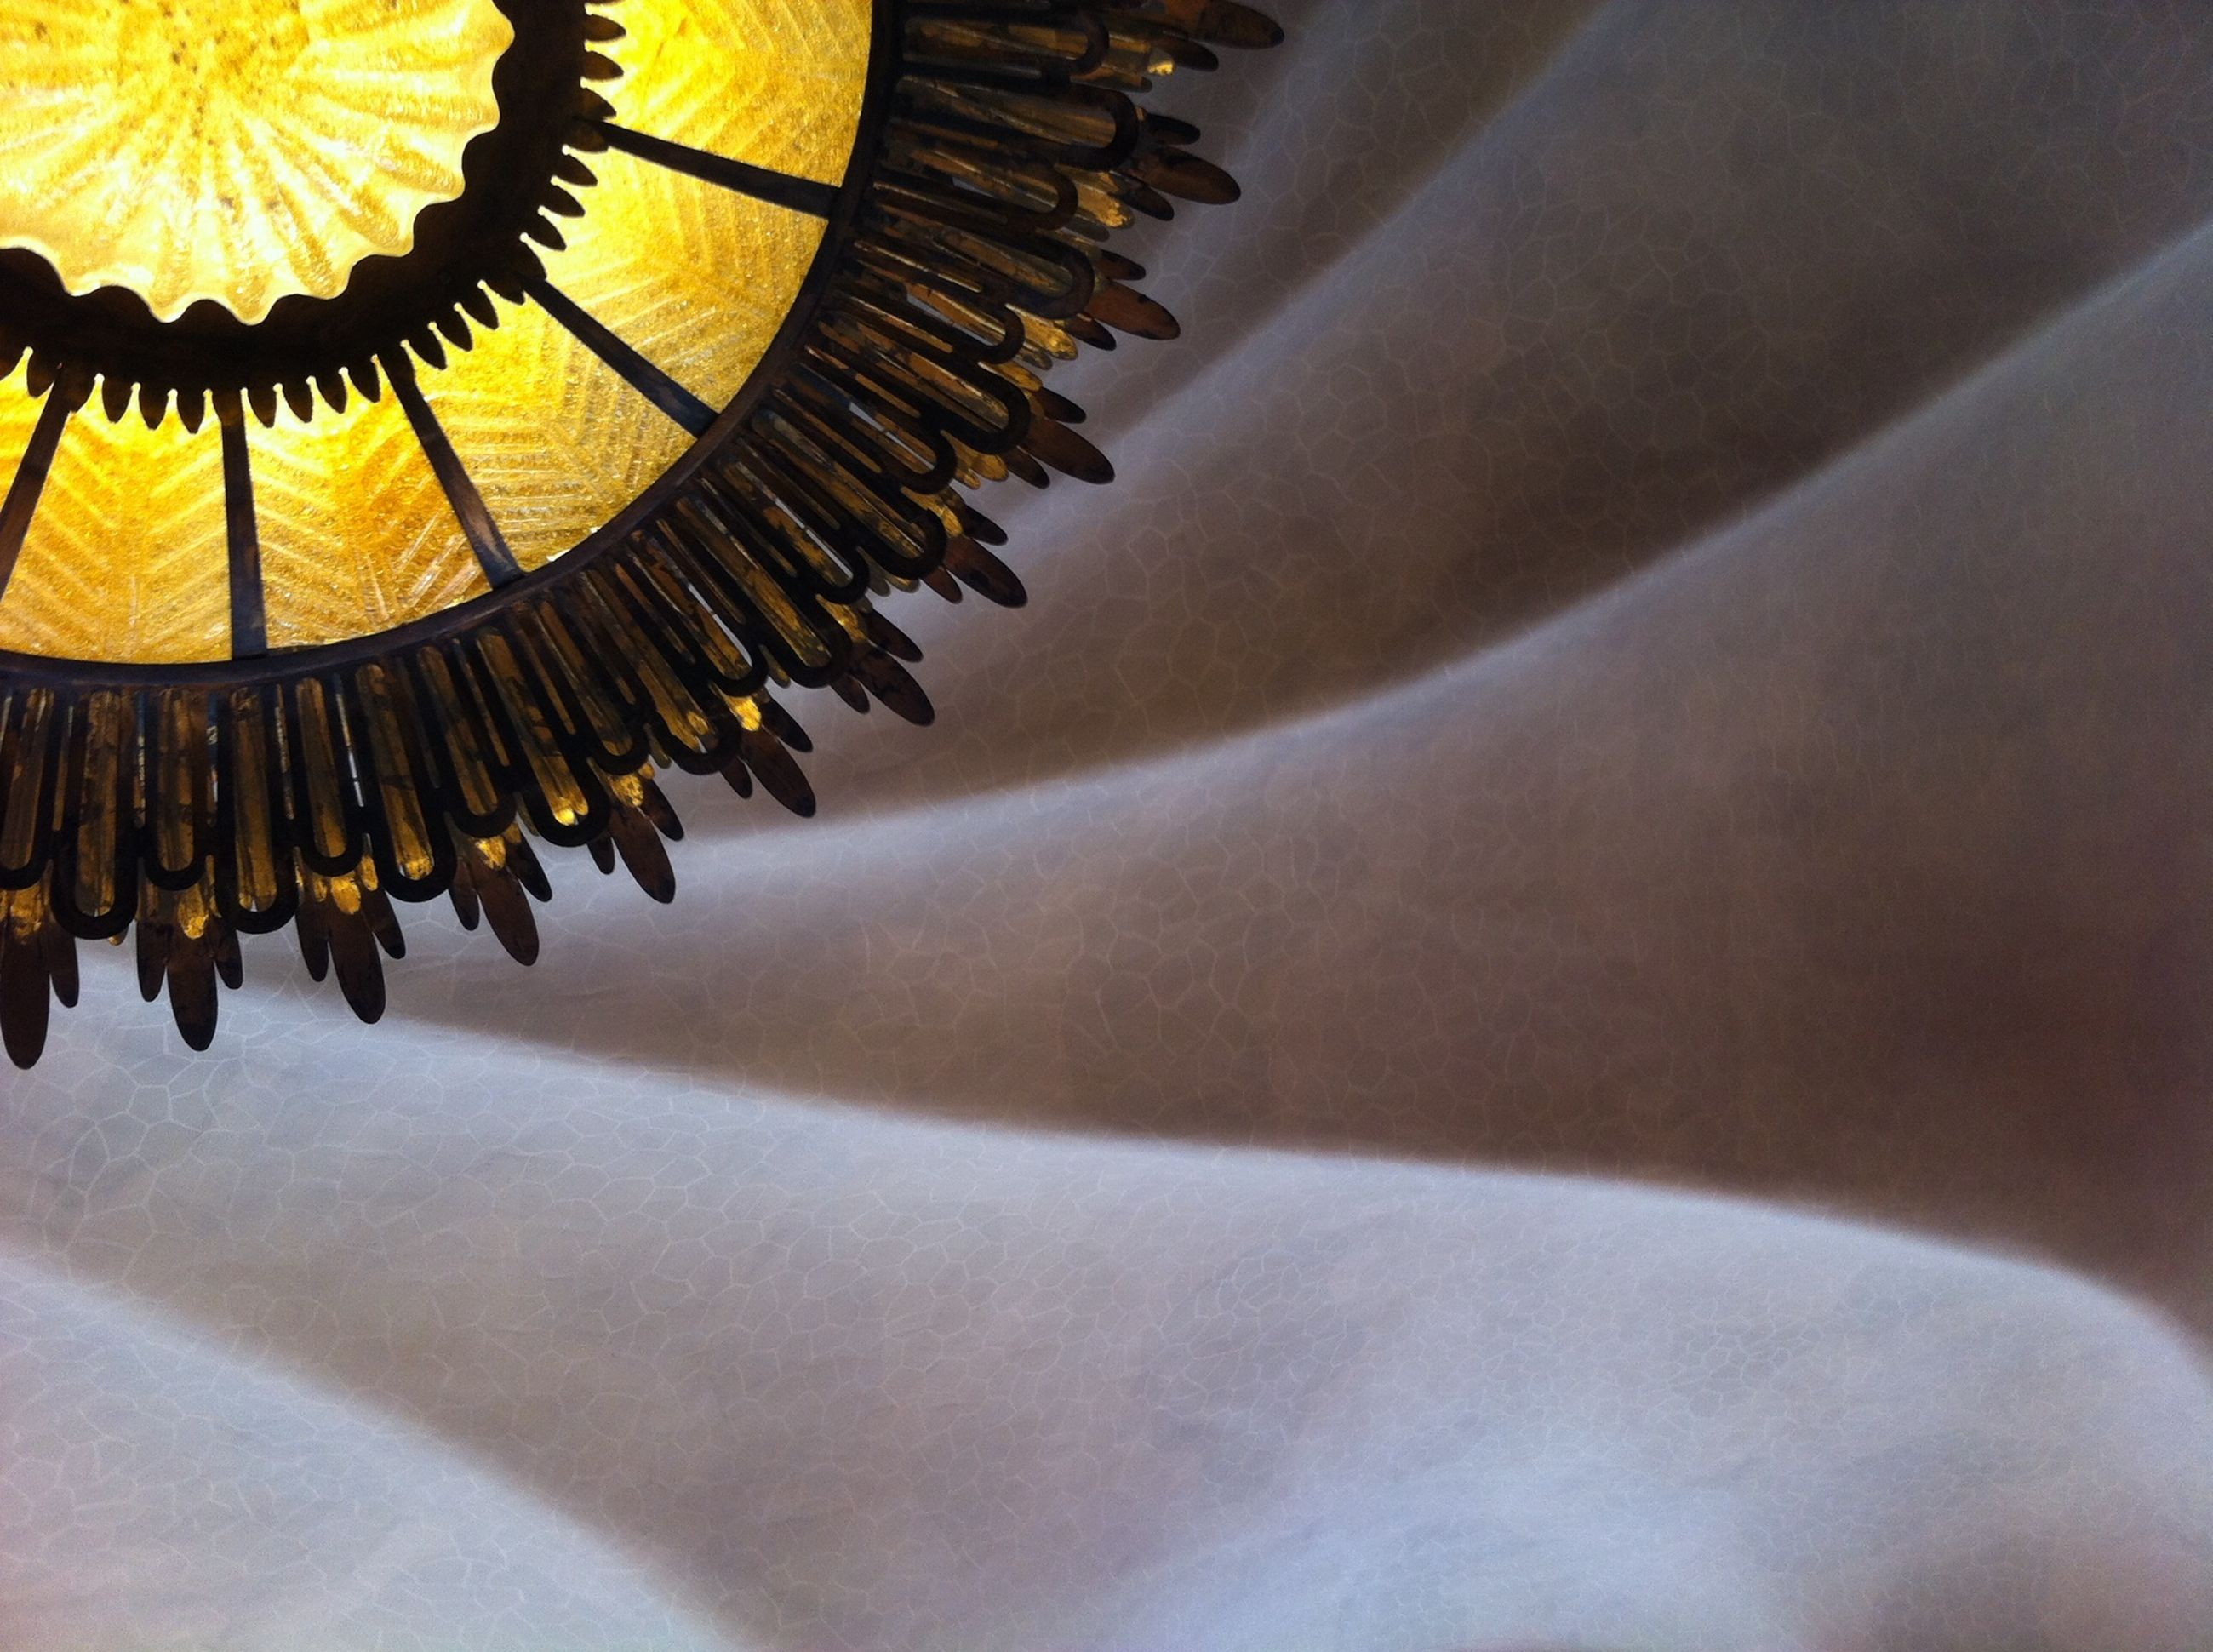 indoors, design, pattern, close-up, no people, low angle view, decoration, spiral, built structure, repetition, ornate, in a row, architecture, arts culture and entertainment, high angle view, spirituality, gold colored, still life, art and craft, religion